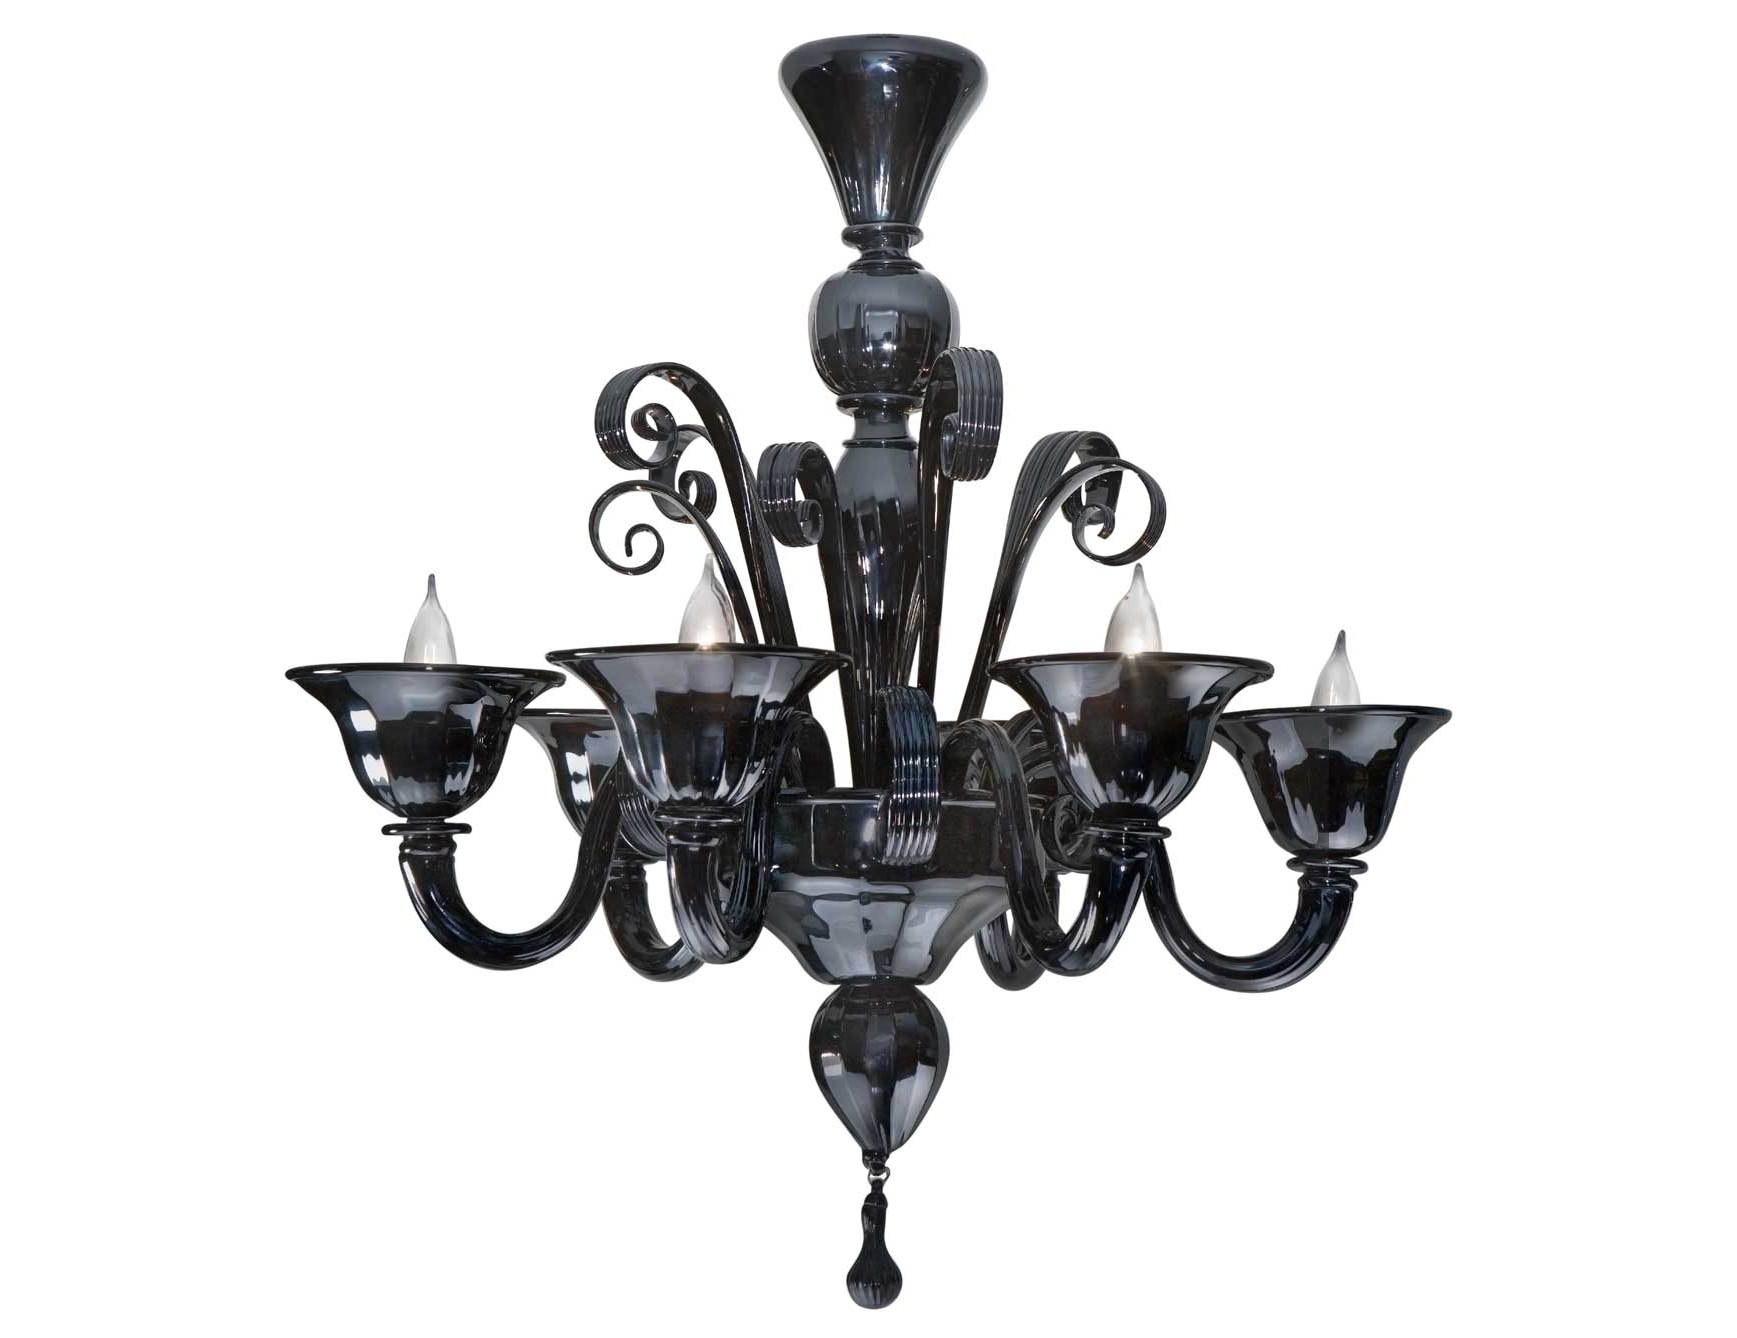 Chandelier: Astounding Black Glass Chandelier Small Black Glass Throughout Most Up To Date Black Glass Chandelier (View 9 of 15)